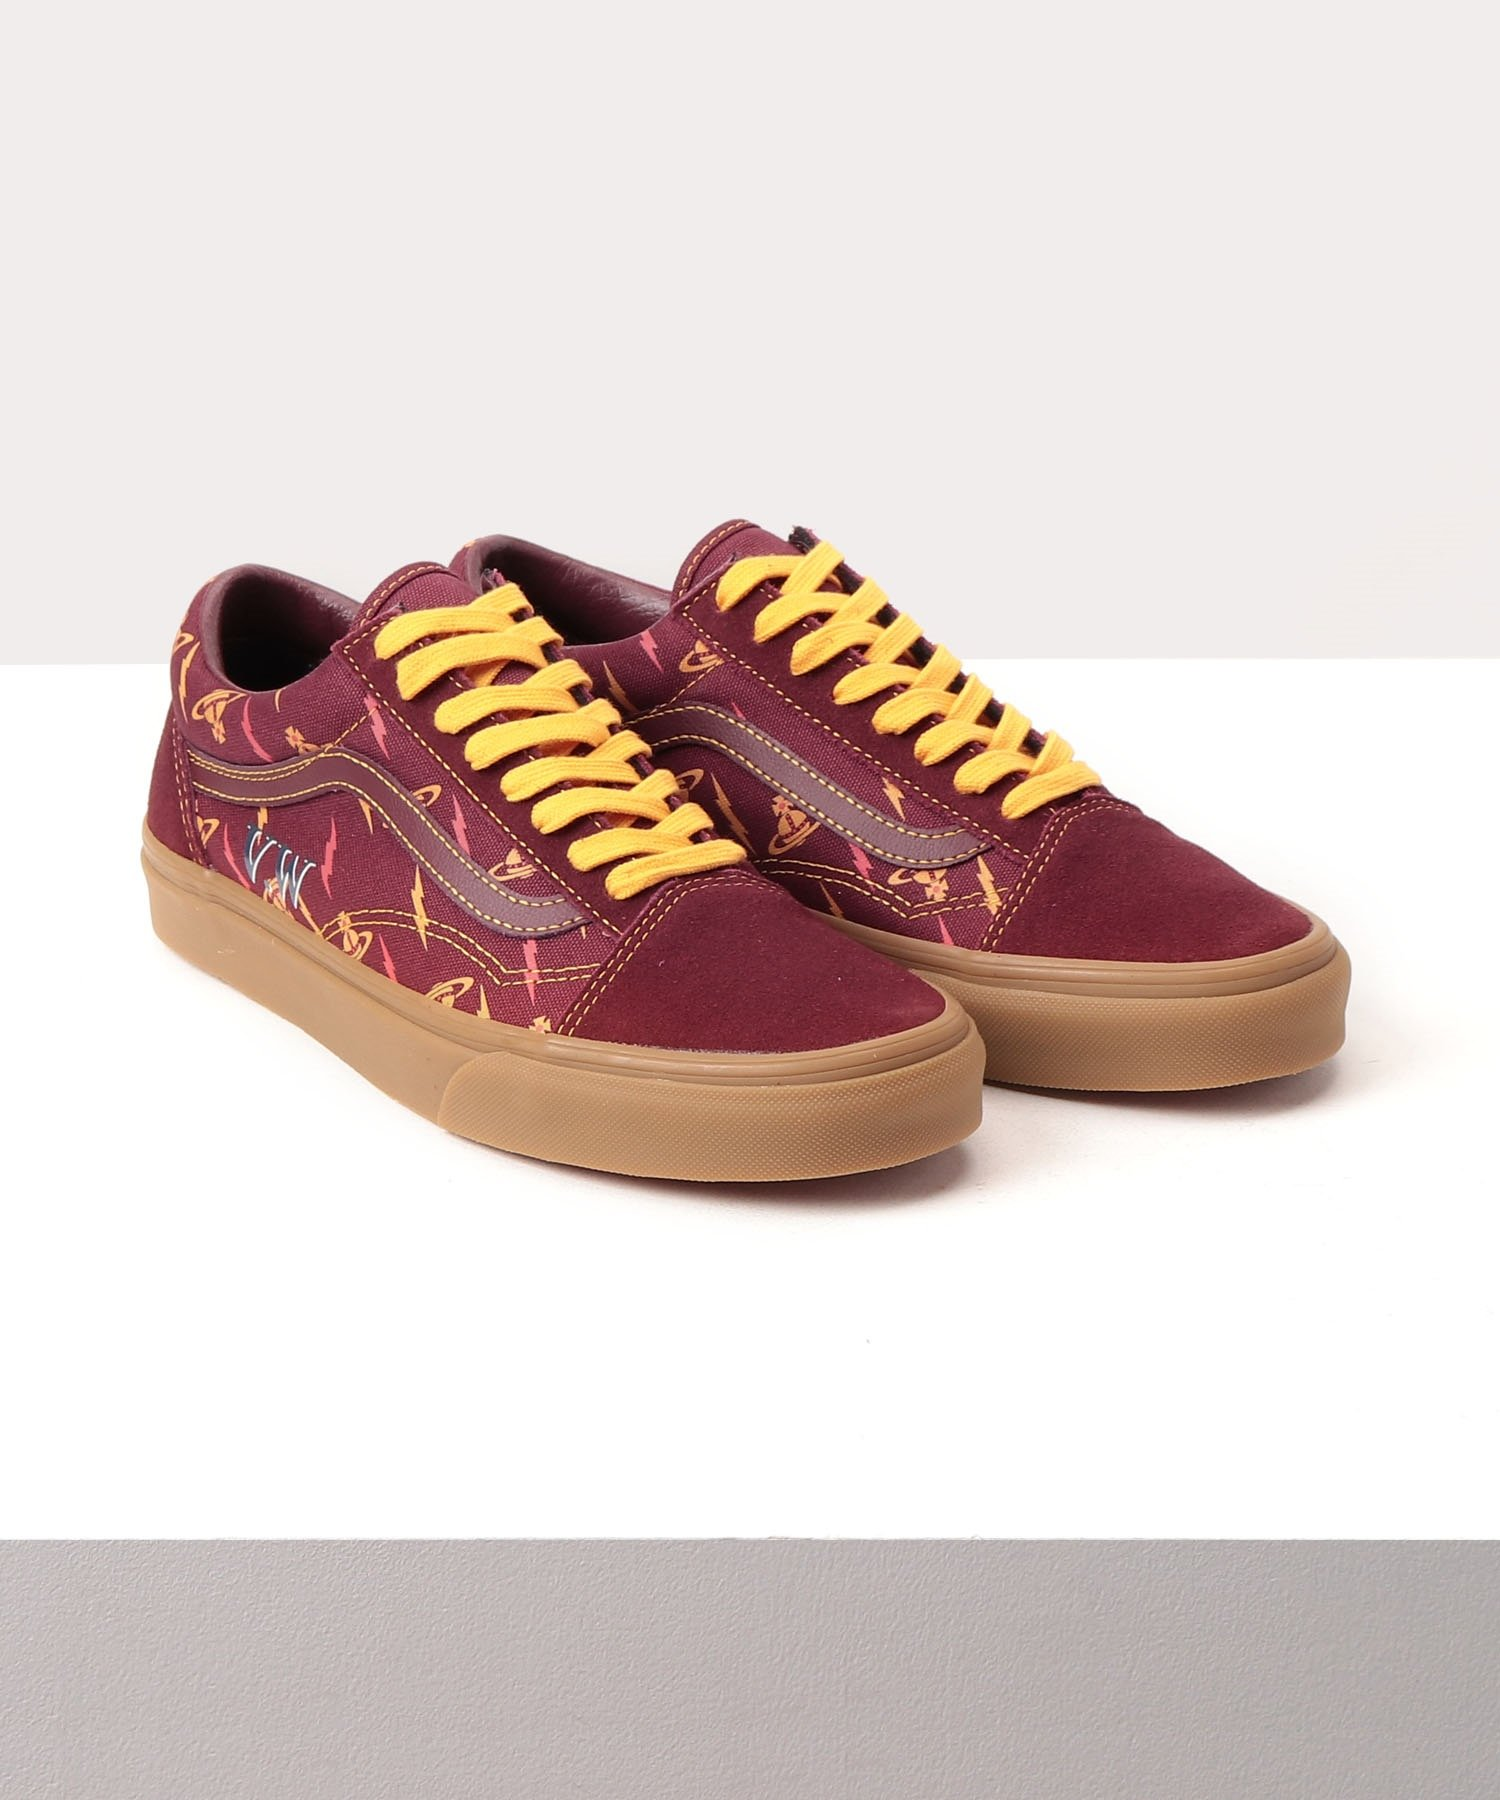 vivienne-westwood-anglomania-vans-2019-collaboration-release-20190920